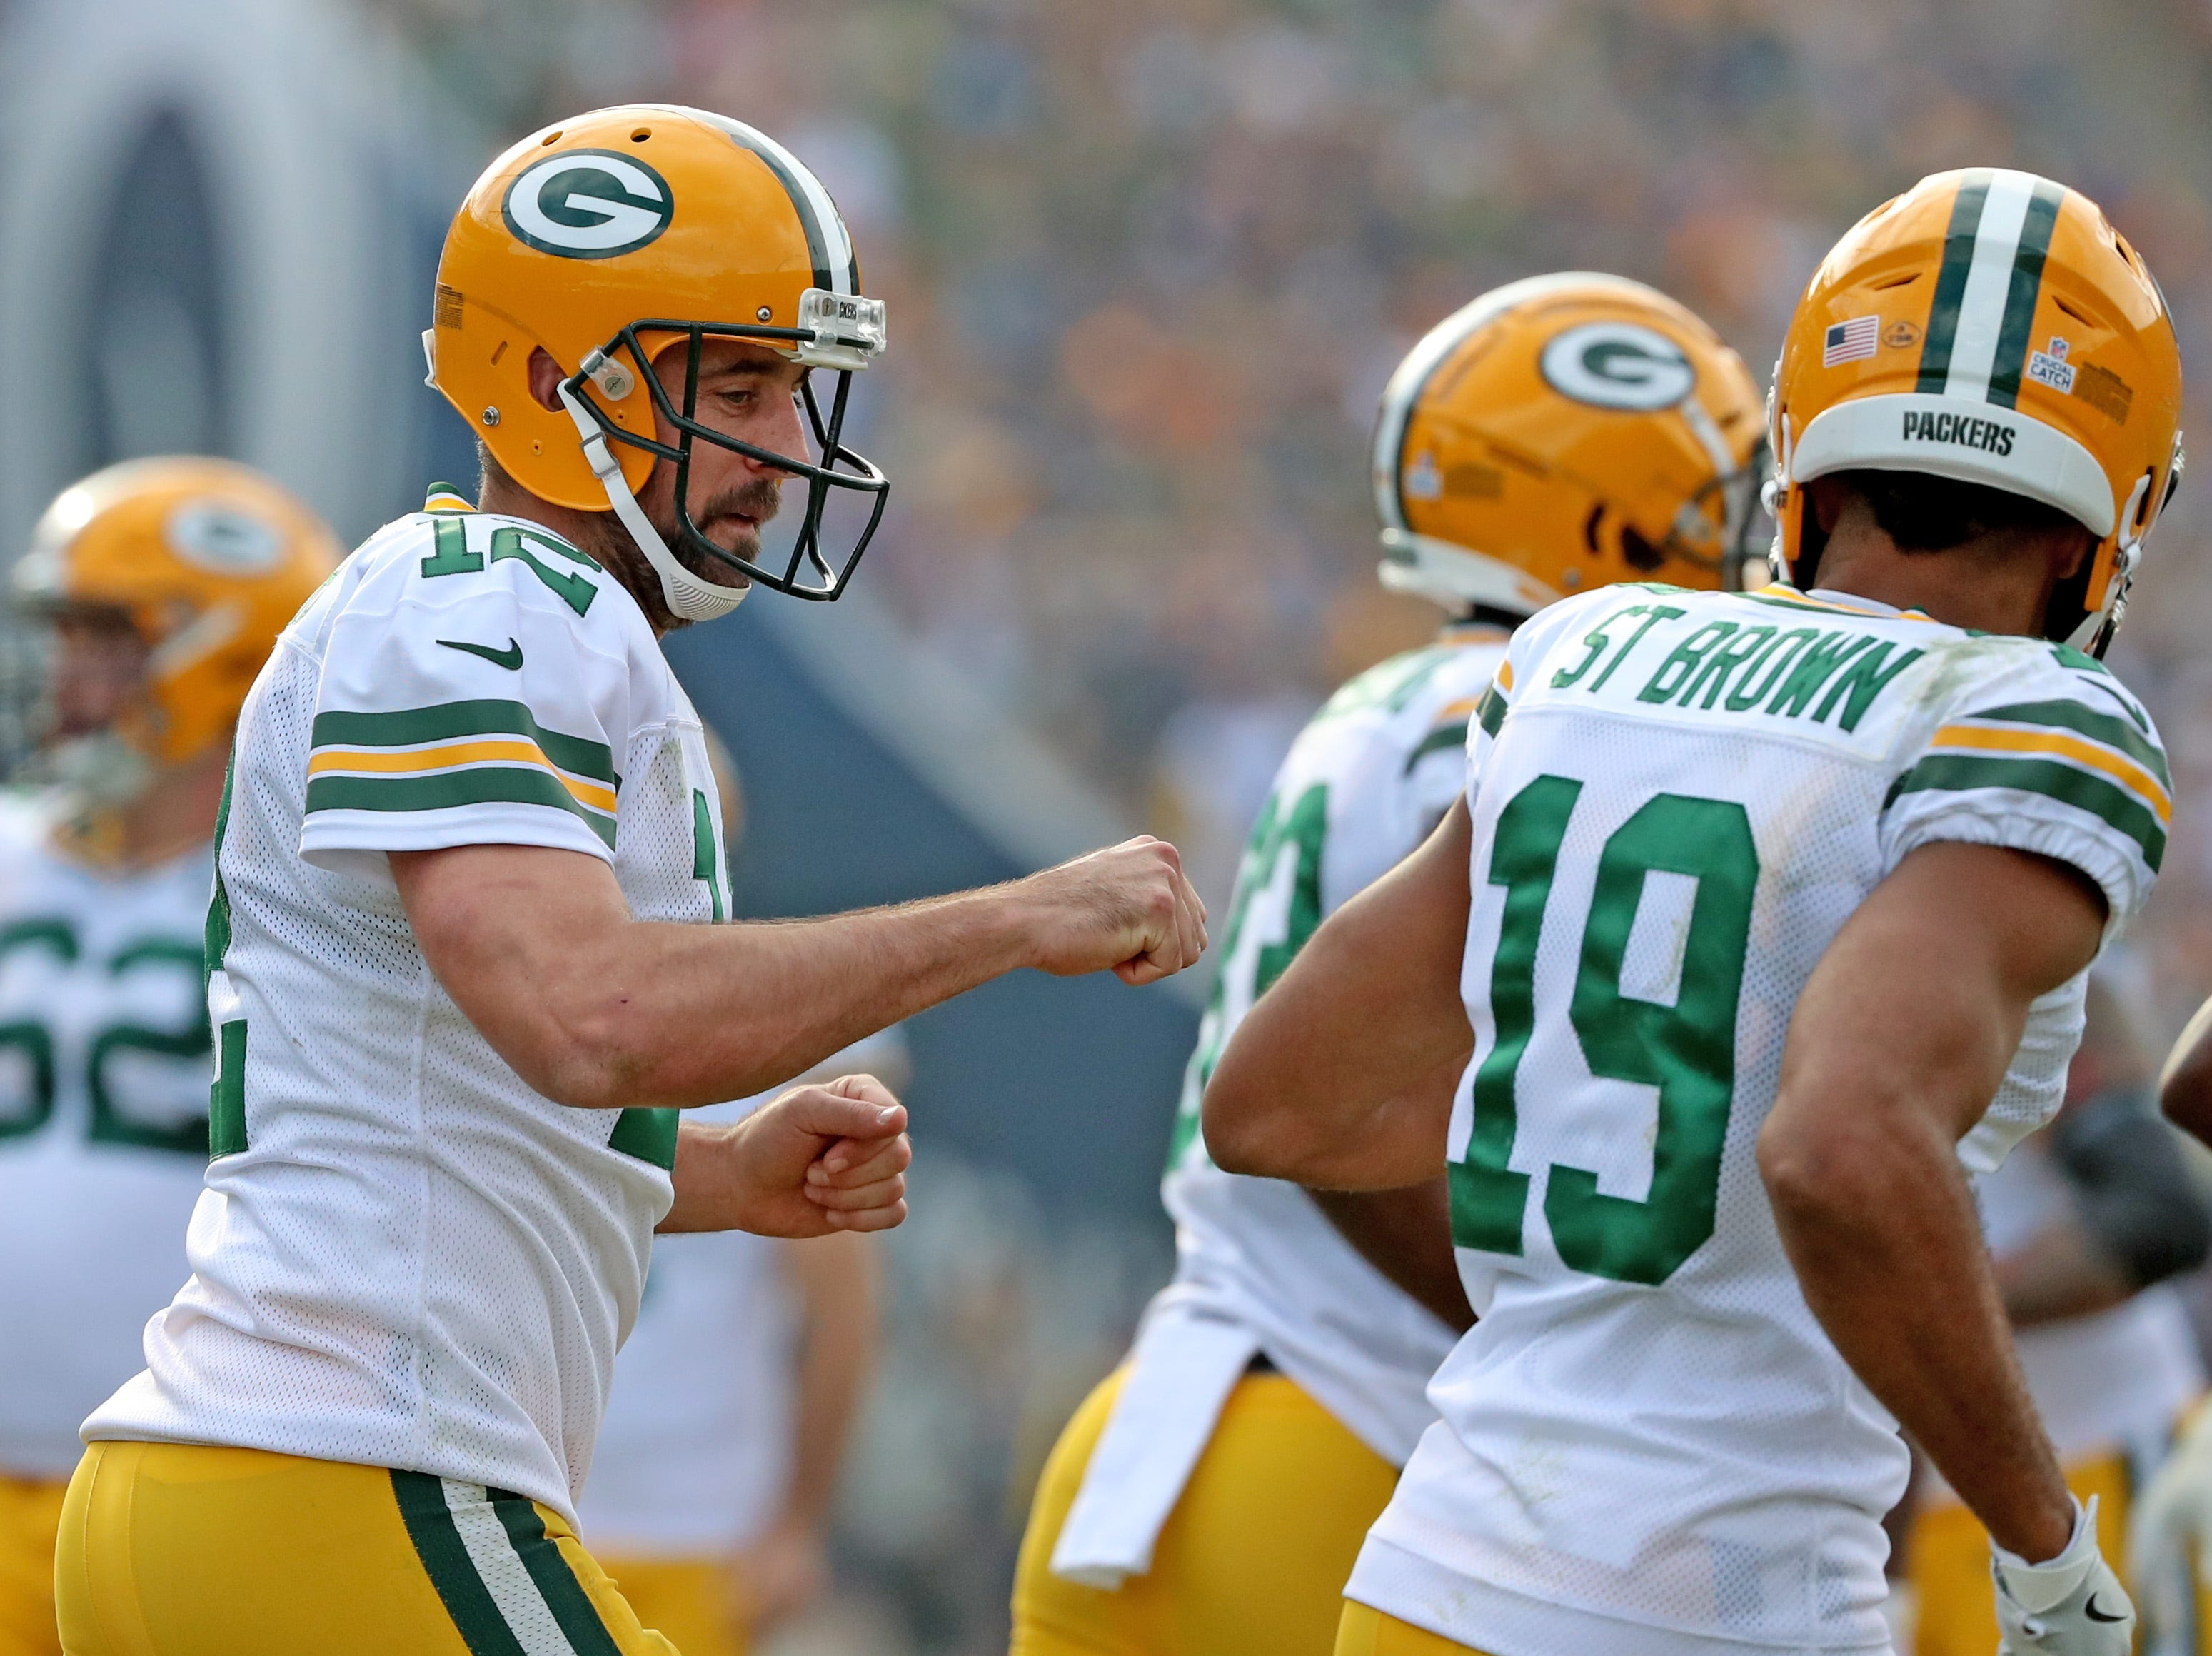 Green Bay Packers quarterback Aaron Rodgers (12) looks for a fist bumps after throwing a touchdown pass to wide receiver Marquez Valdes-Scantling (83) against the LA Rams Sunday, October 28, 2018 at the Memorial Coliseum in Los Angeles.